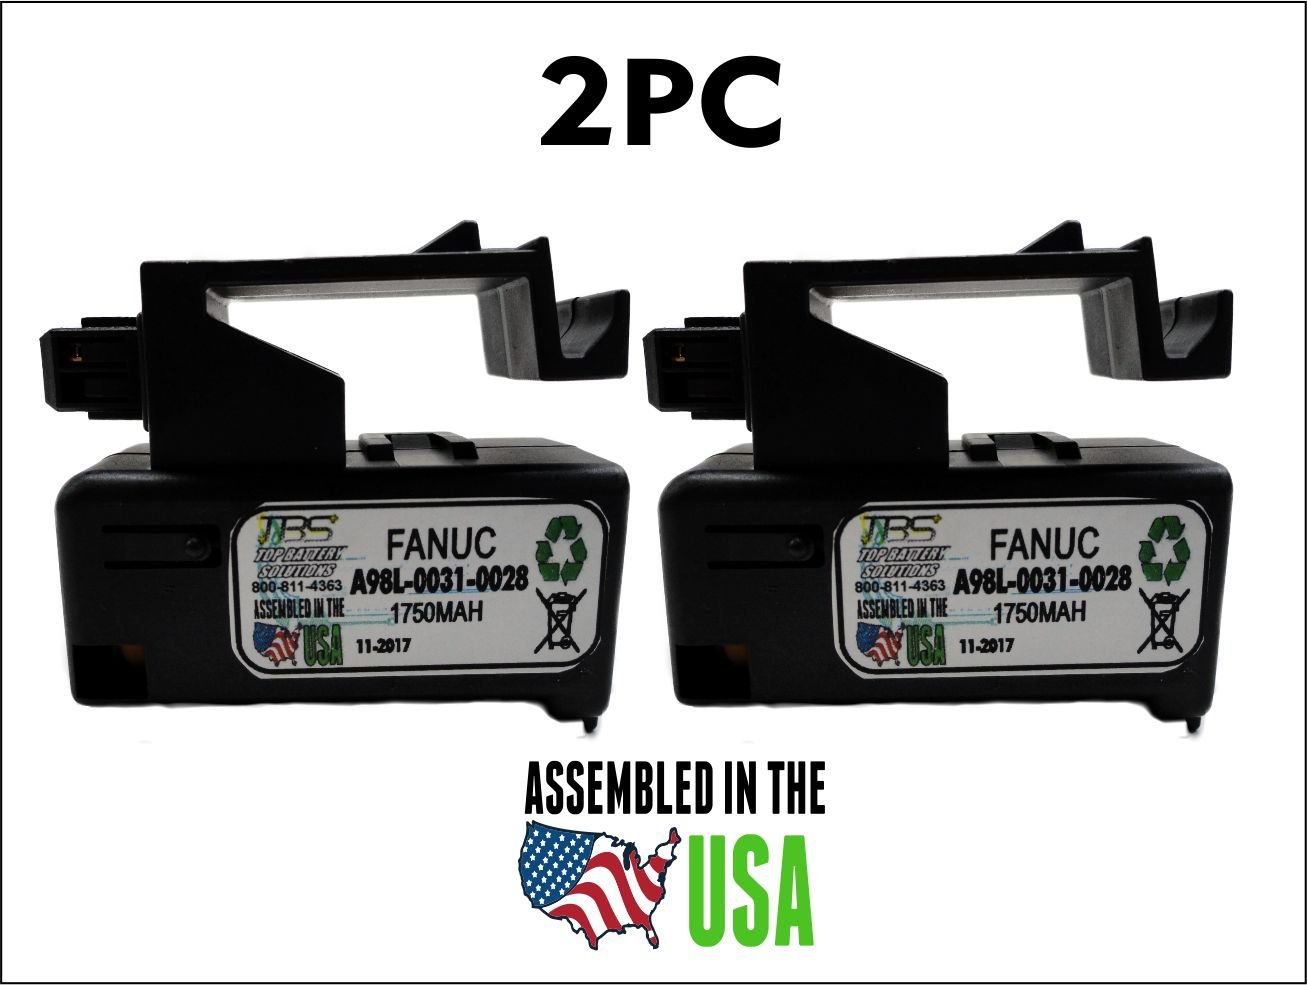 2PC Fanuc A98L-0031-0028, A02B-0323-K102 Single Cell 3V in Cartridge Battery Replacement